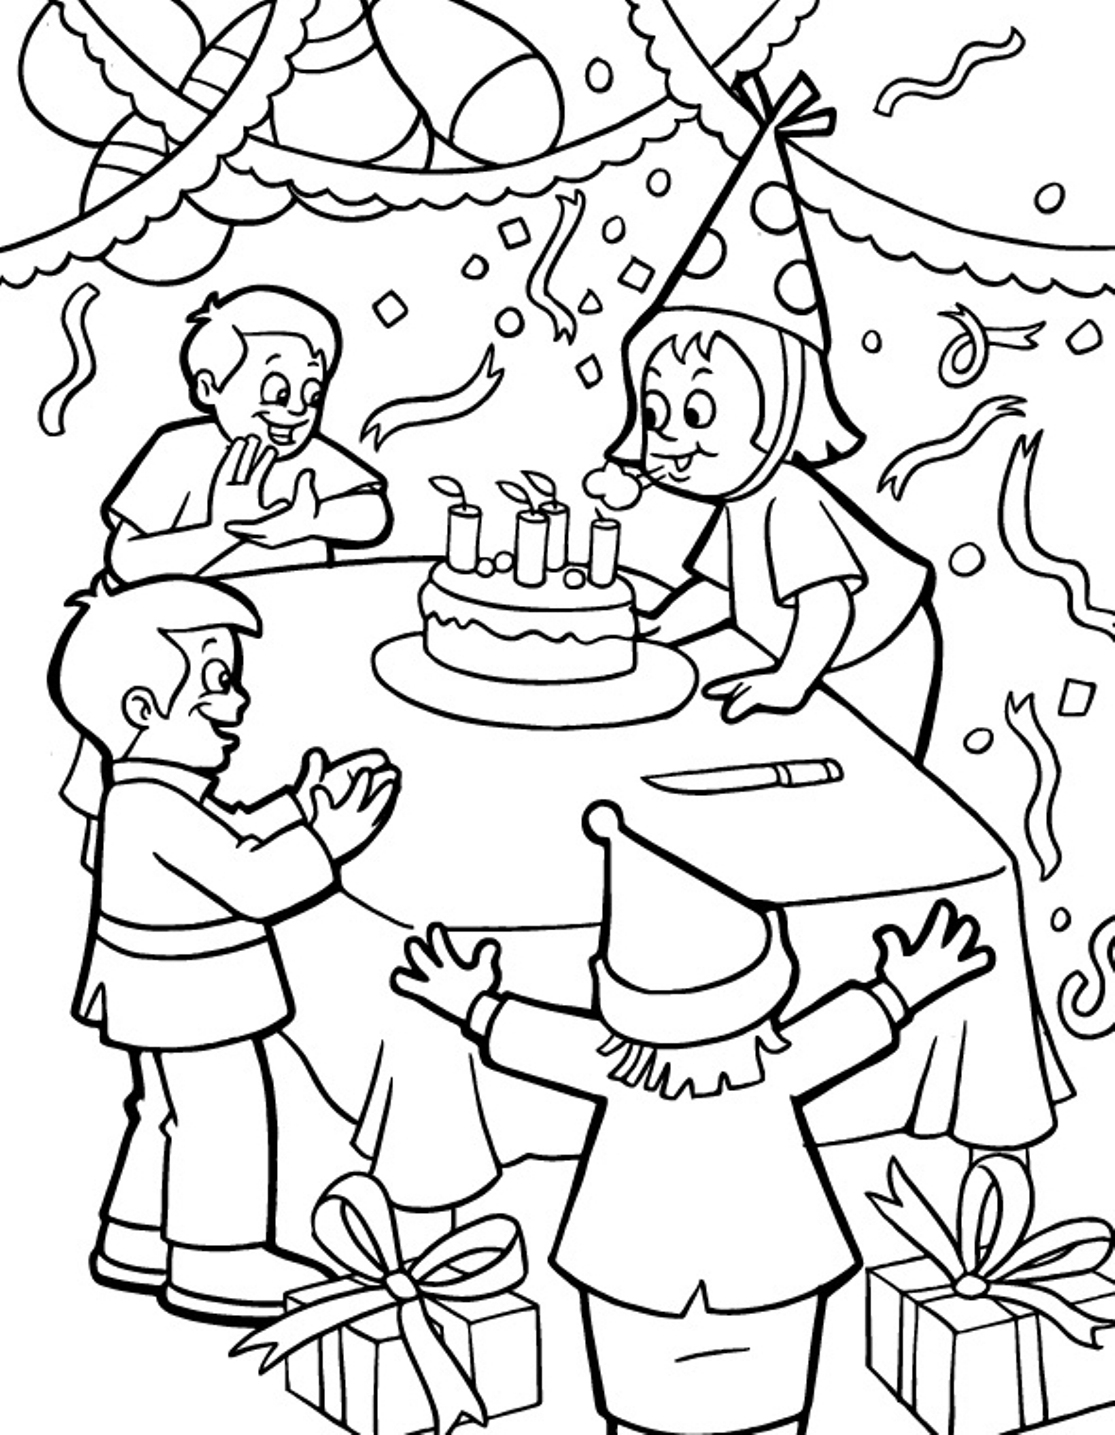 drawing pictures of birthday party ; birthday-party-scene-for-drawing-emejing-coloring-birthday-party-pictures-best-printable-coloring